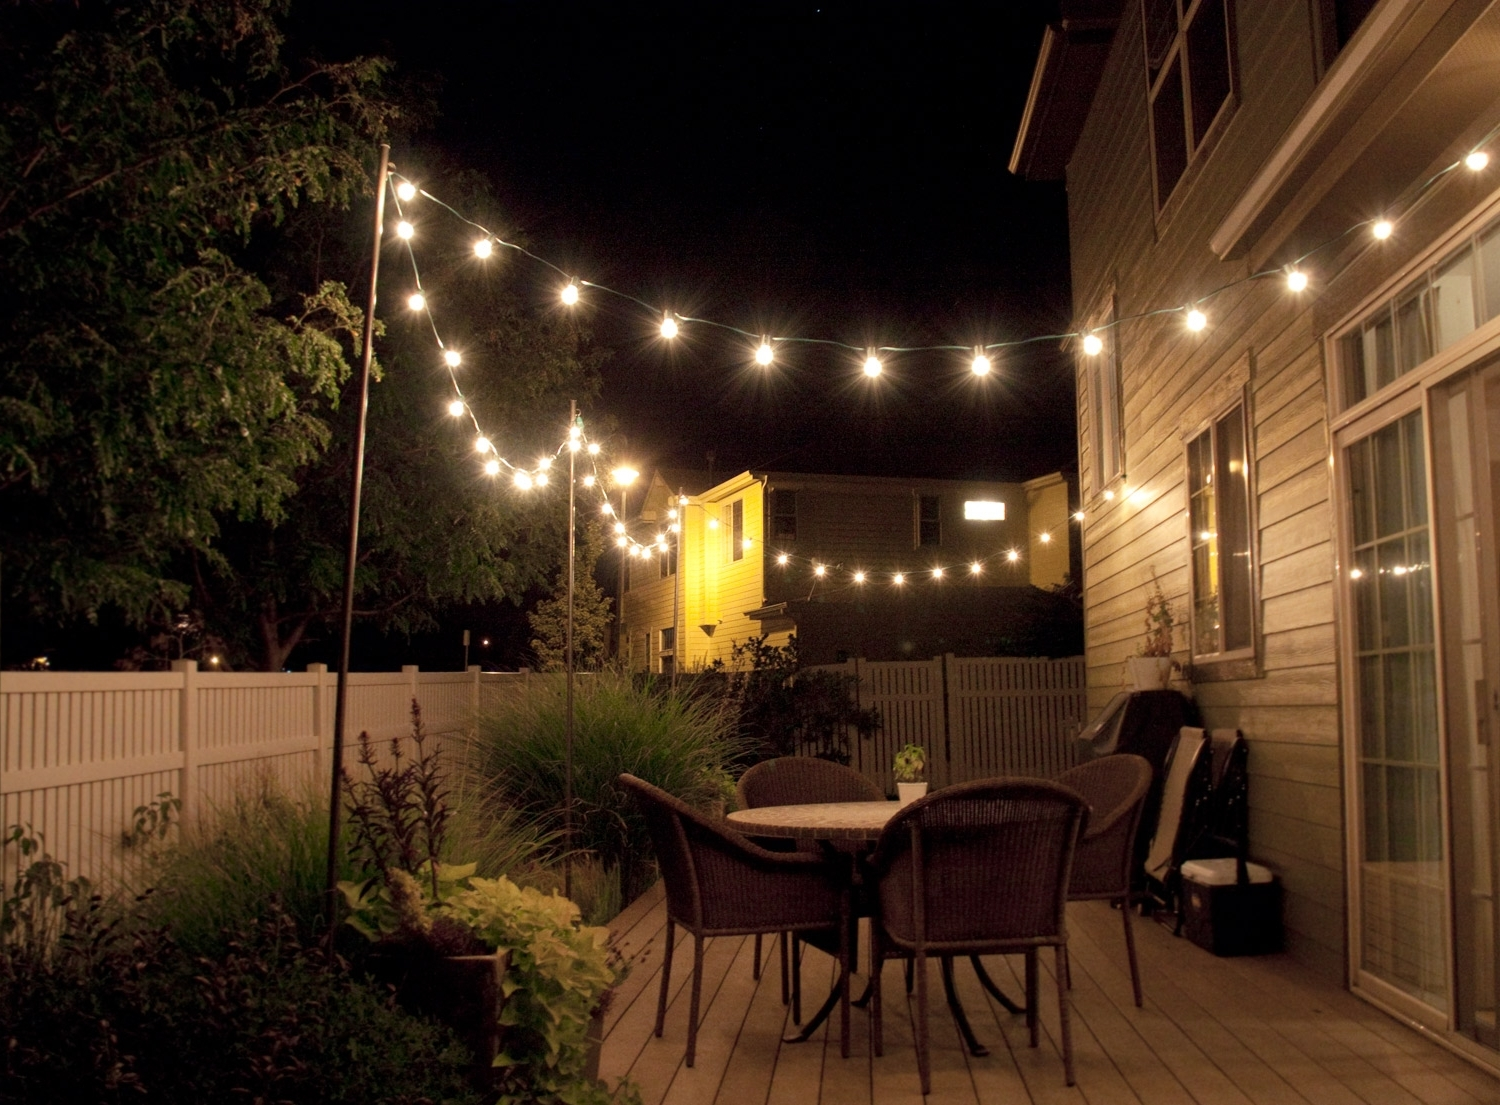 Outdoor Lanterns For Porch Within Latest Innovative Outdoor Hanging Porch Lights To Make Your Home Look (View 13 of 20)